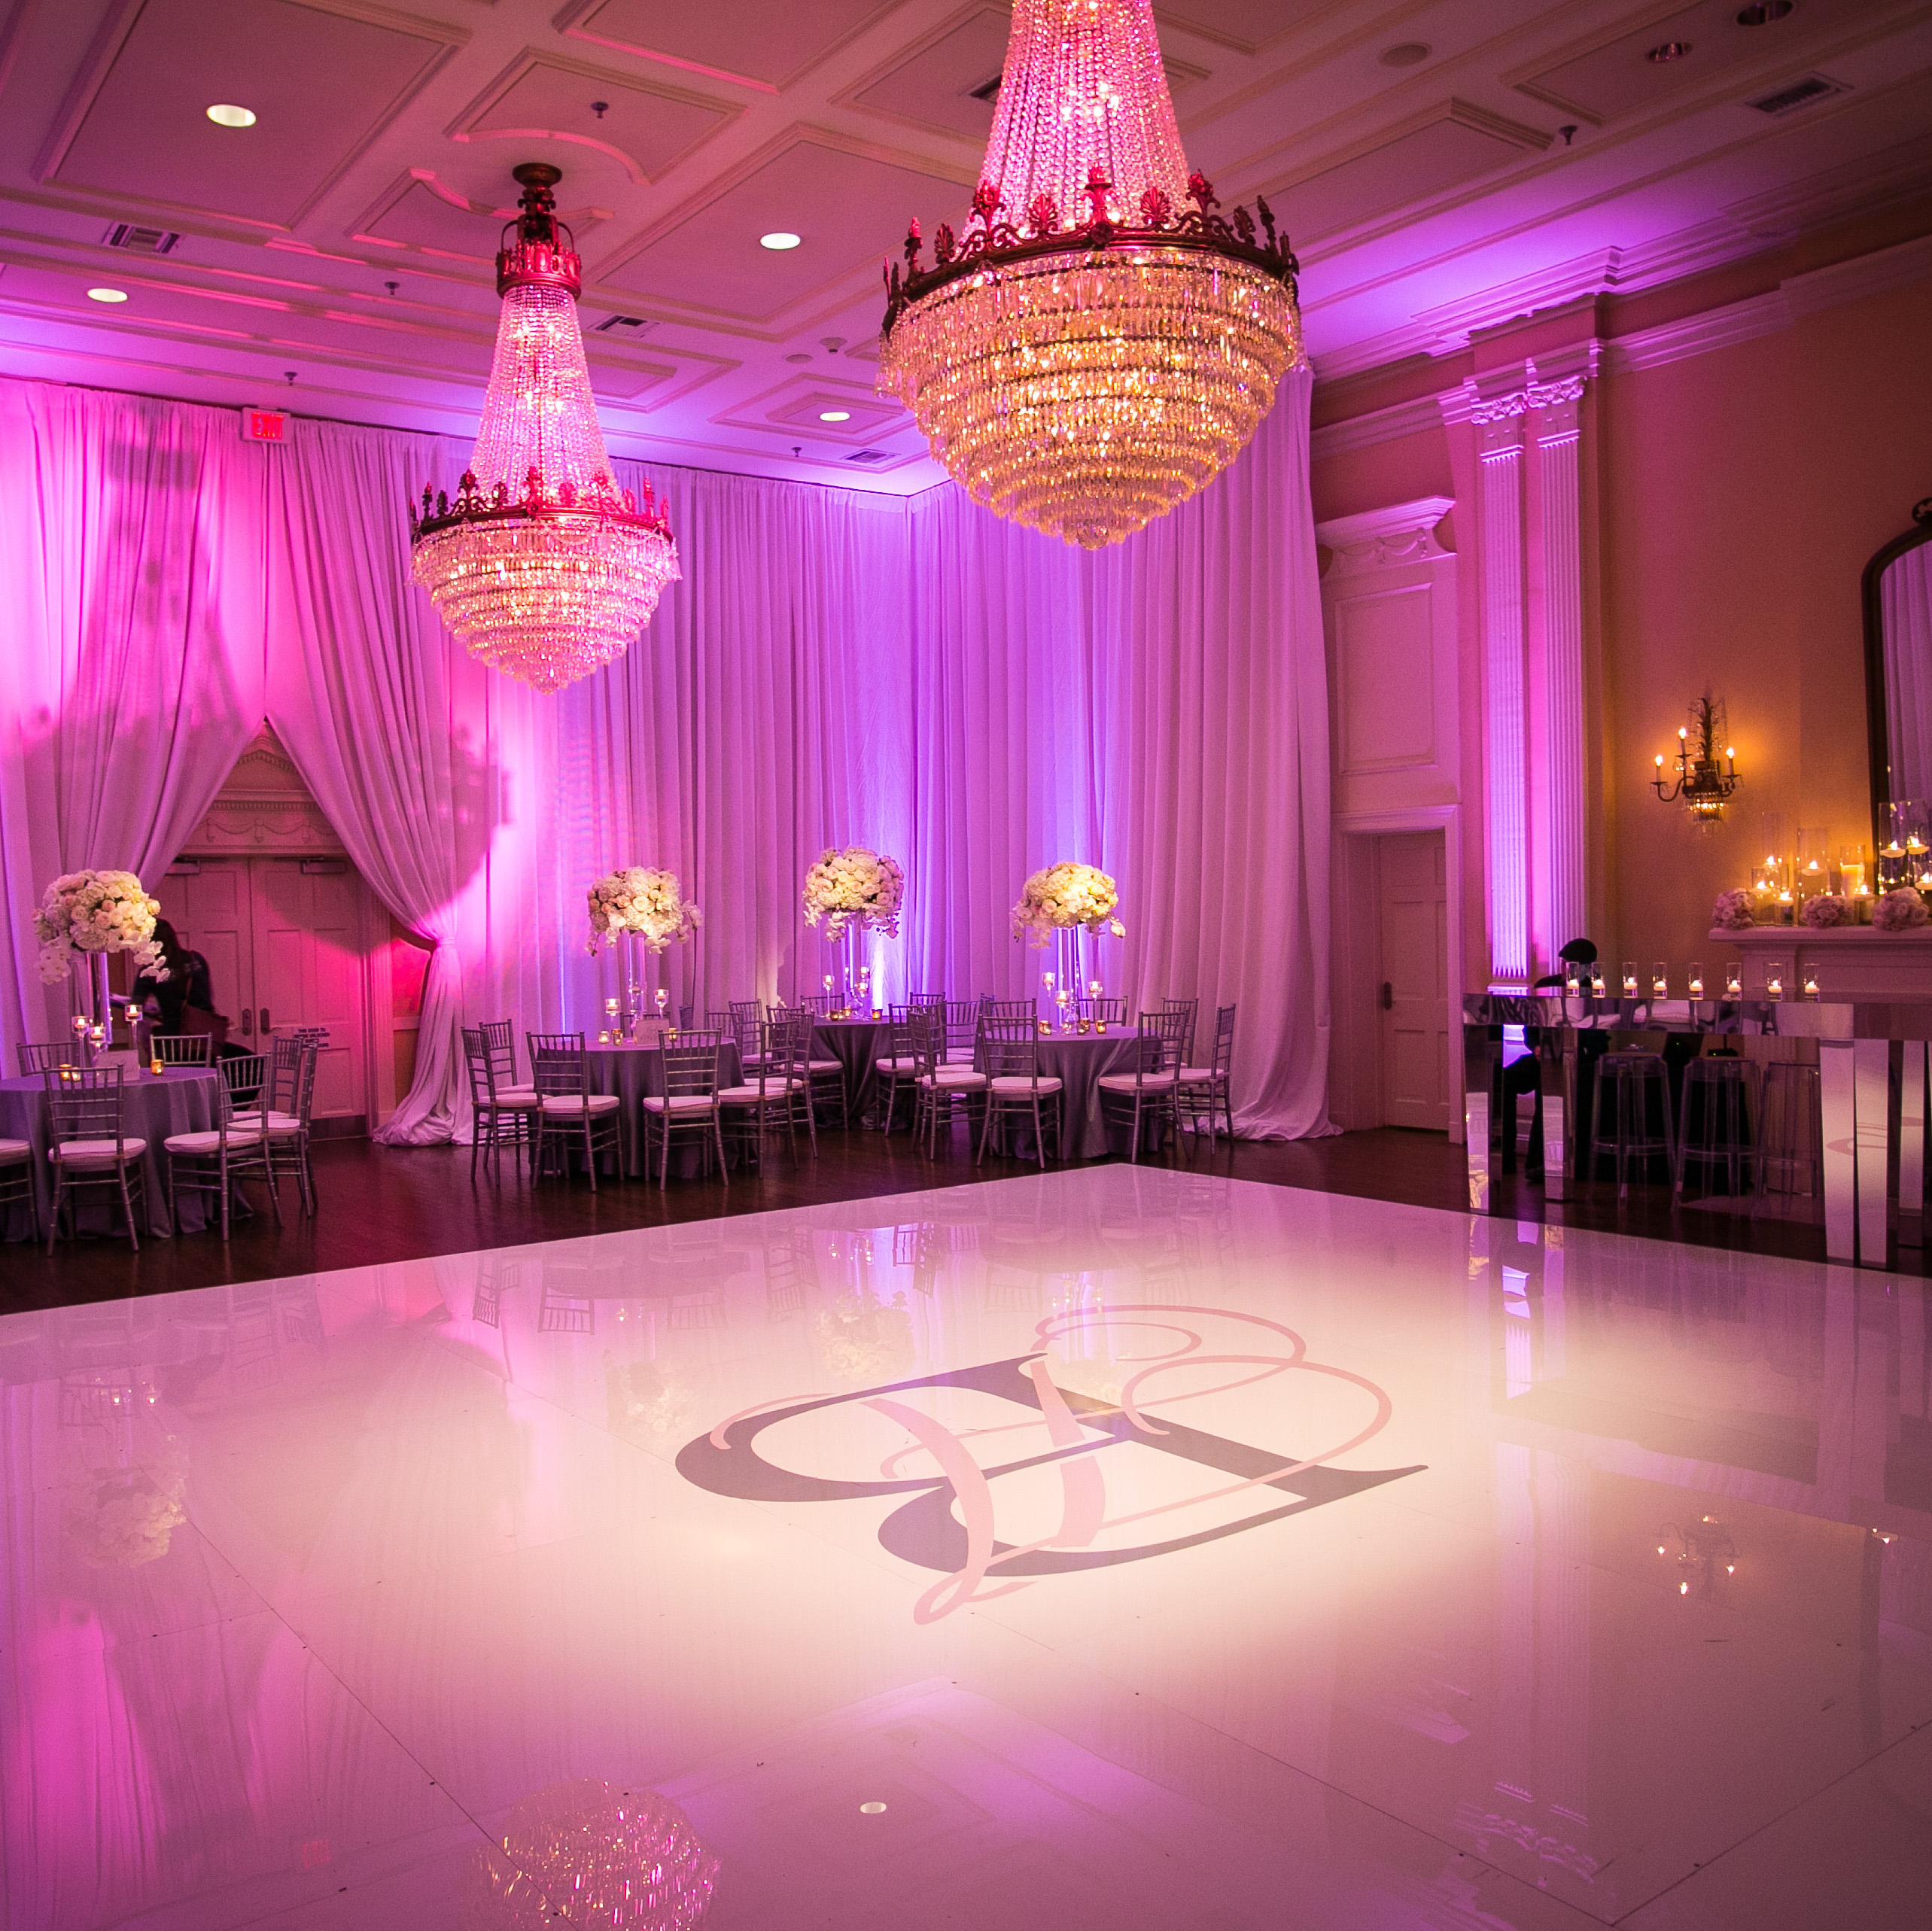 Party Lighting in Dallas | Event Lighting by Type - BEYOND